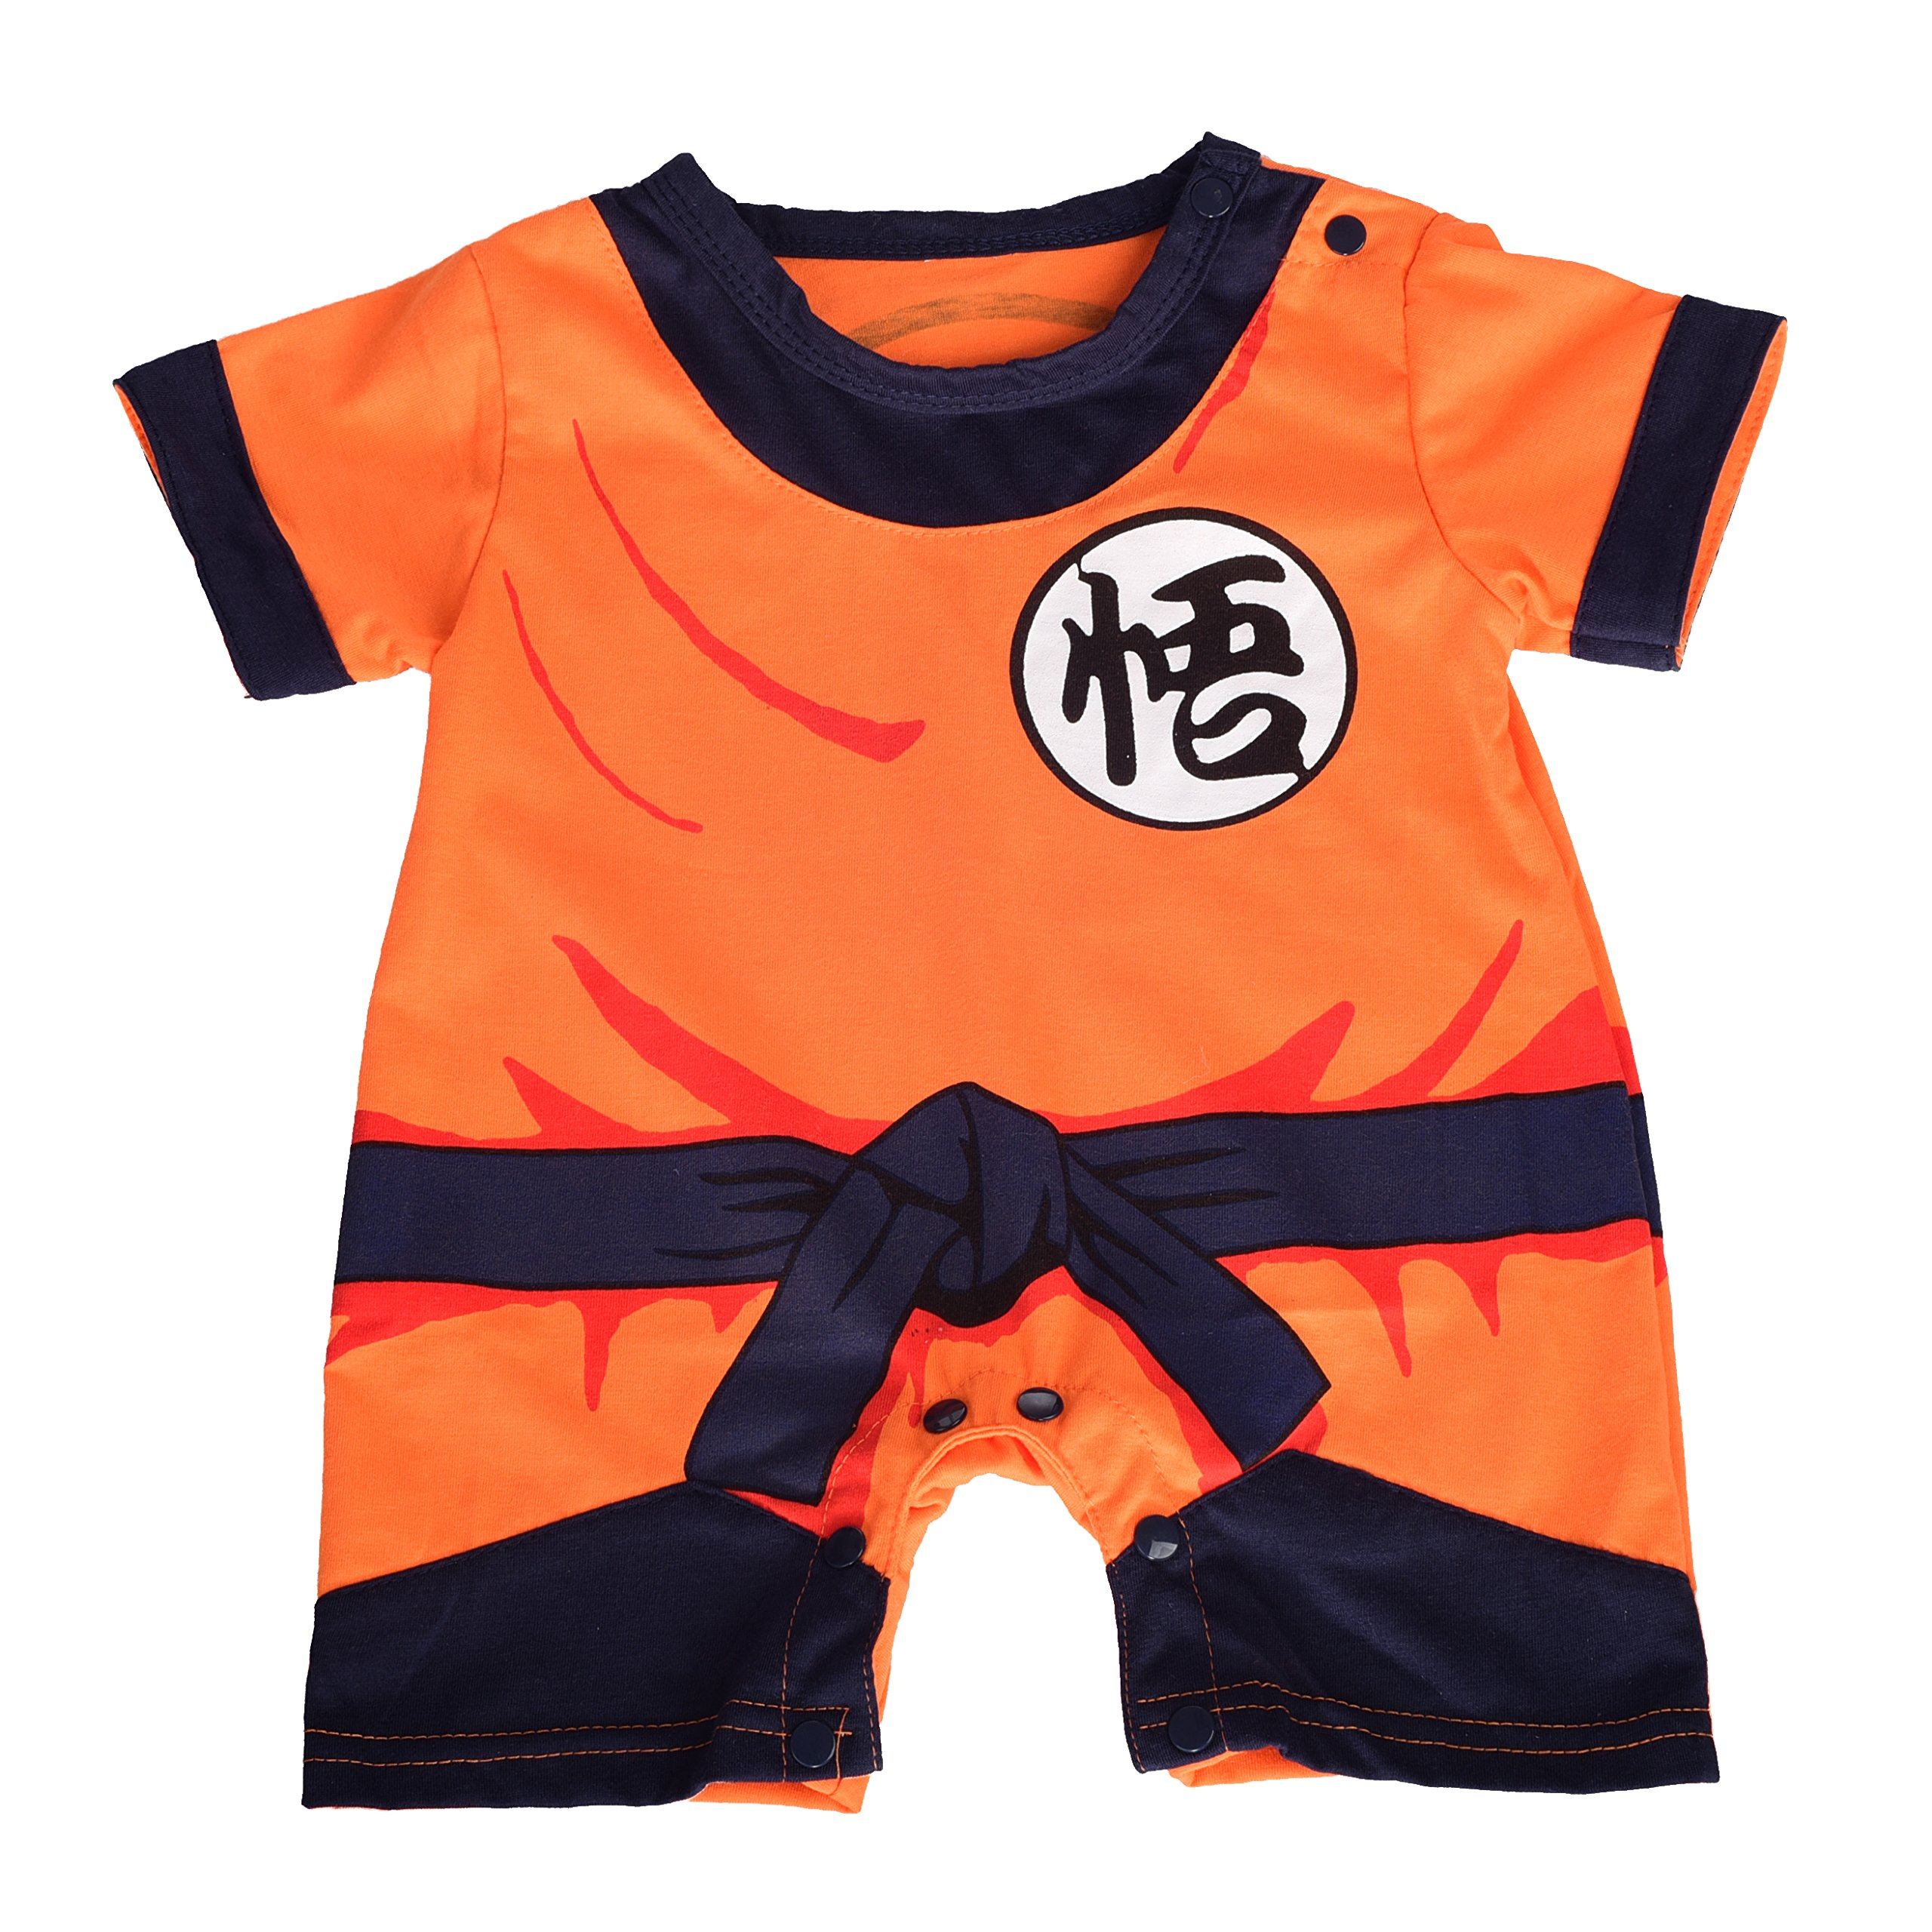 Dressy Daisy Baby Dragon Ball Son Goku Costume Dress up Jumpsuit Romper Outfit Infant  sc 1 st  Amazon.com & Amazon.com: This Isnu0027t Even My Final Form Dragon Ball Z Gt Baby ...